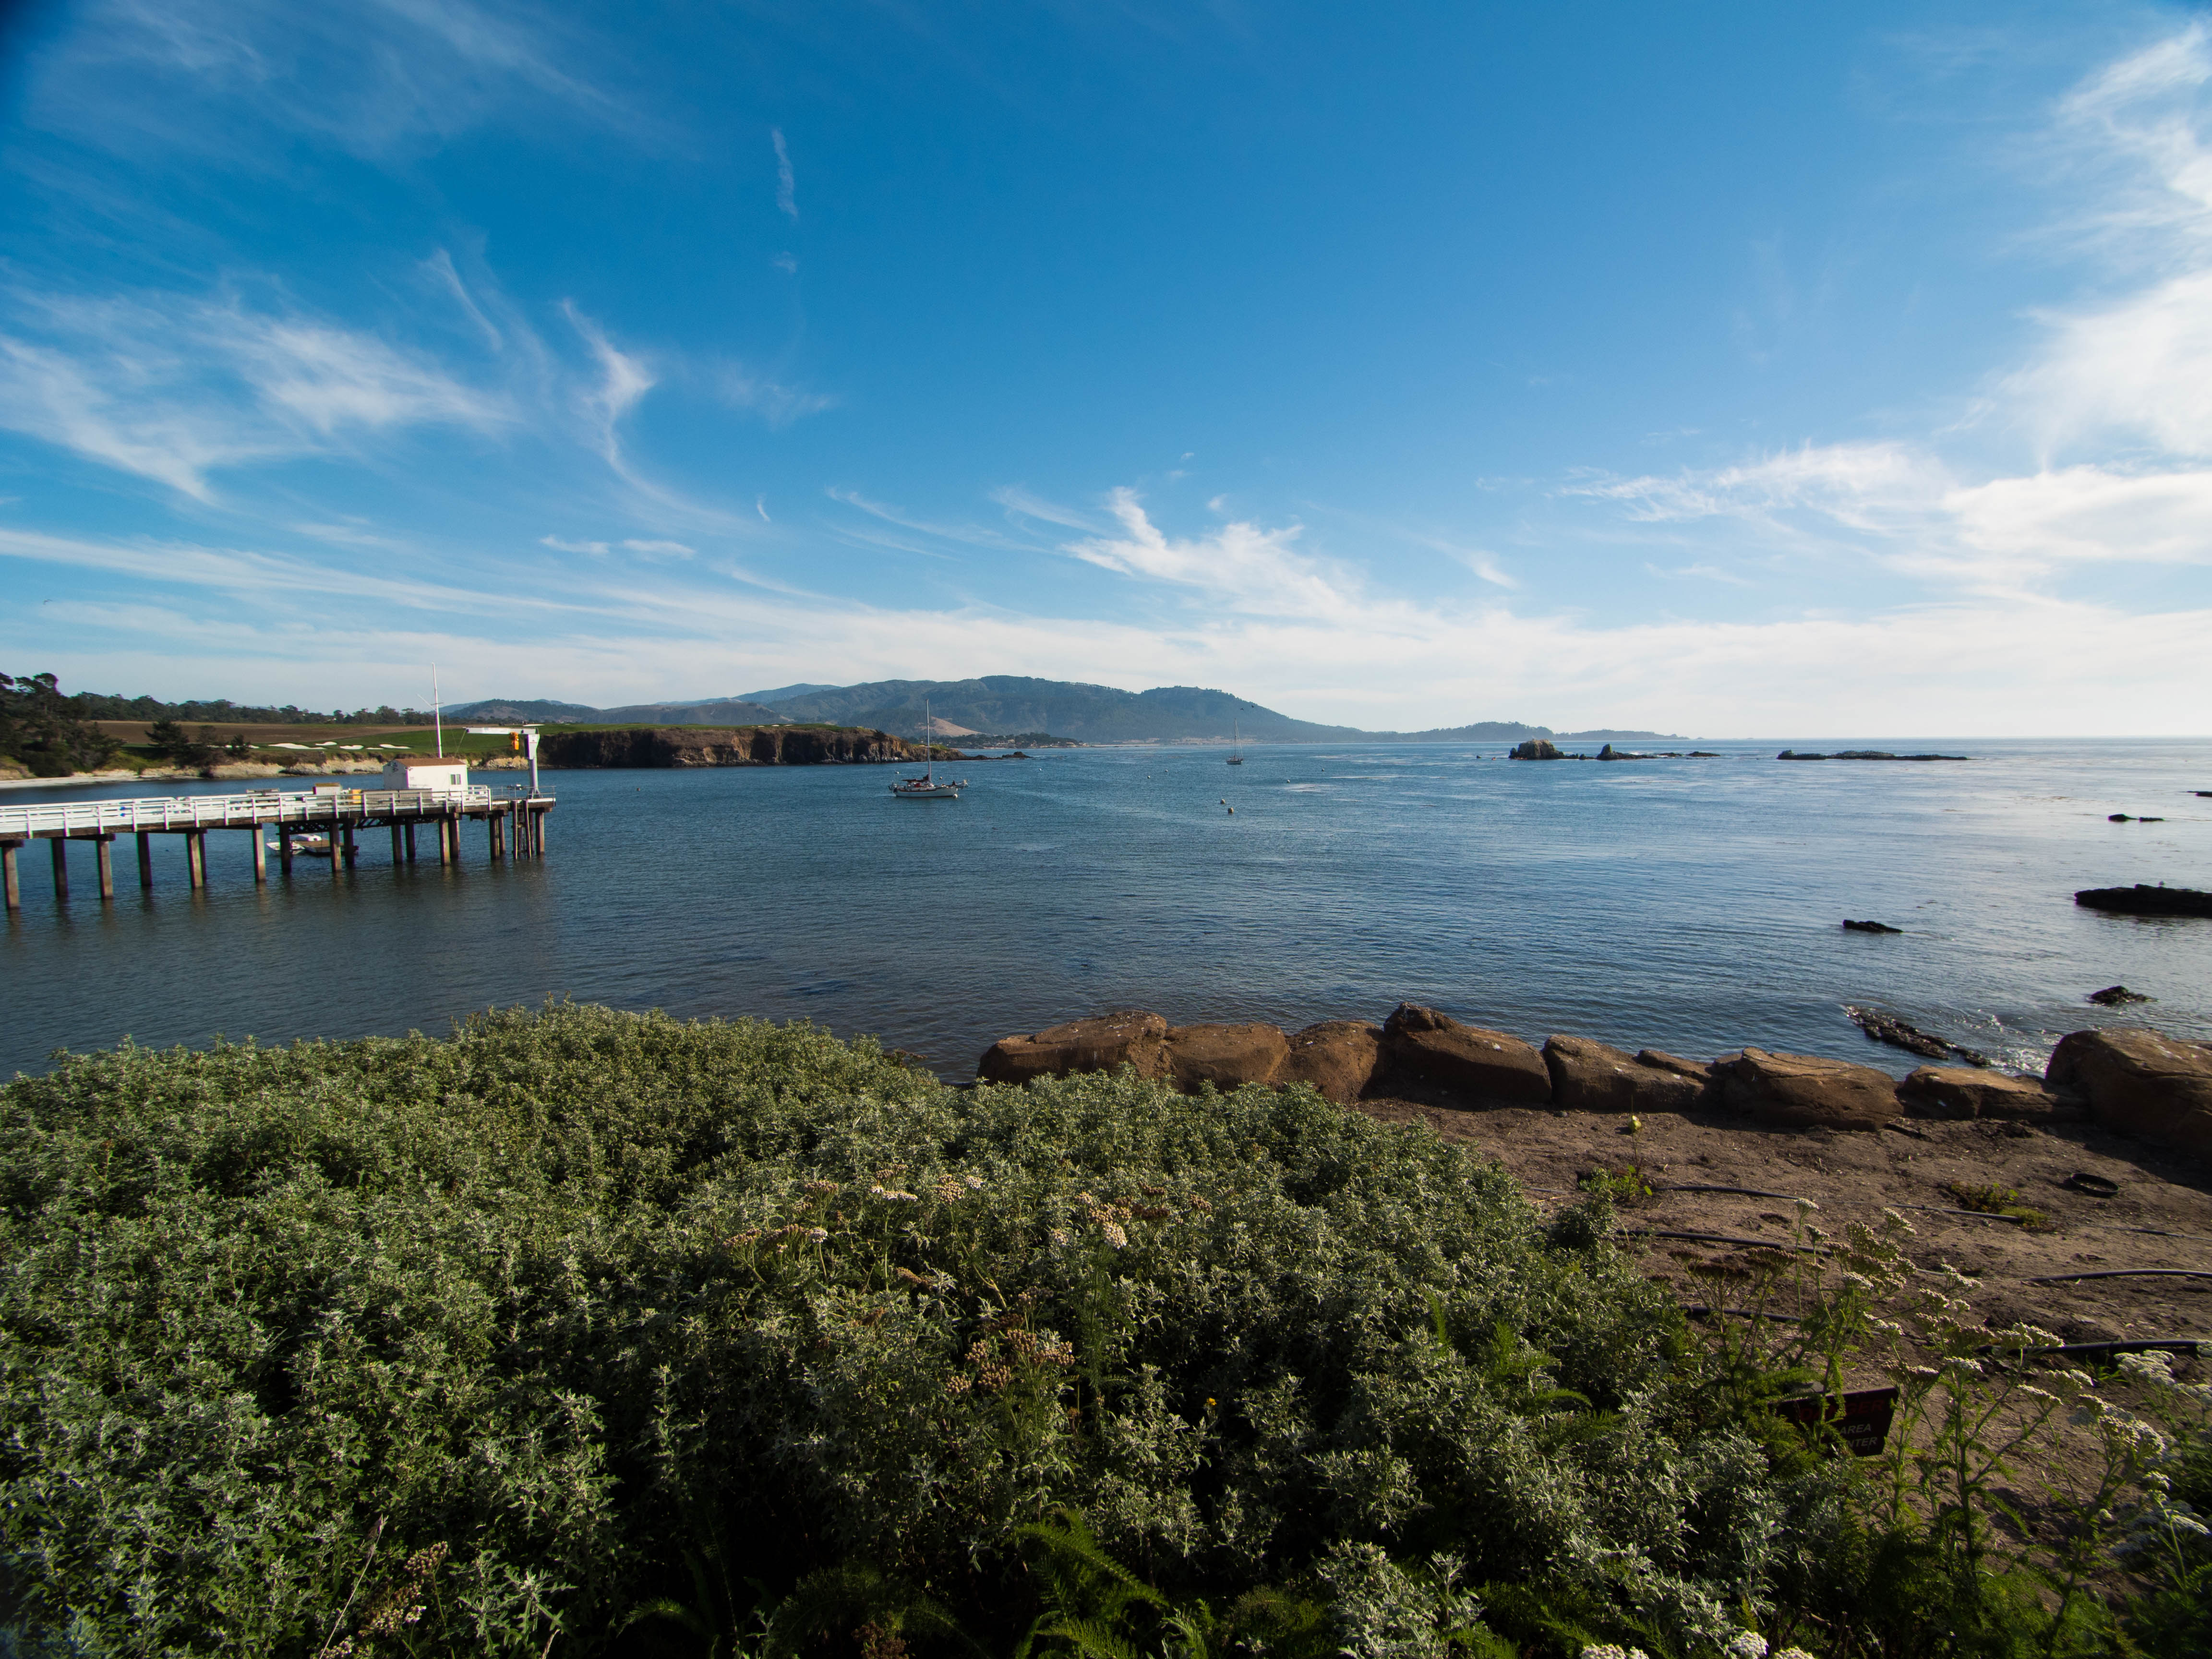 Monterey Bay and Stillwater Cove